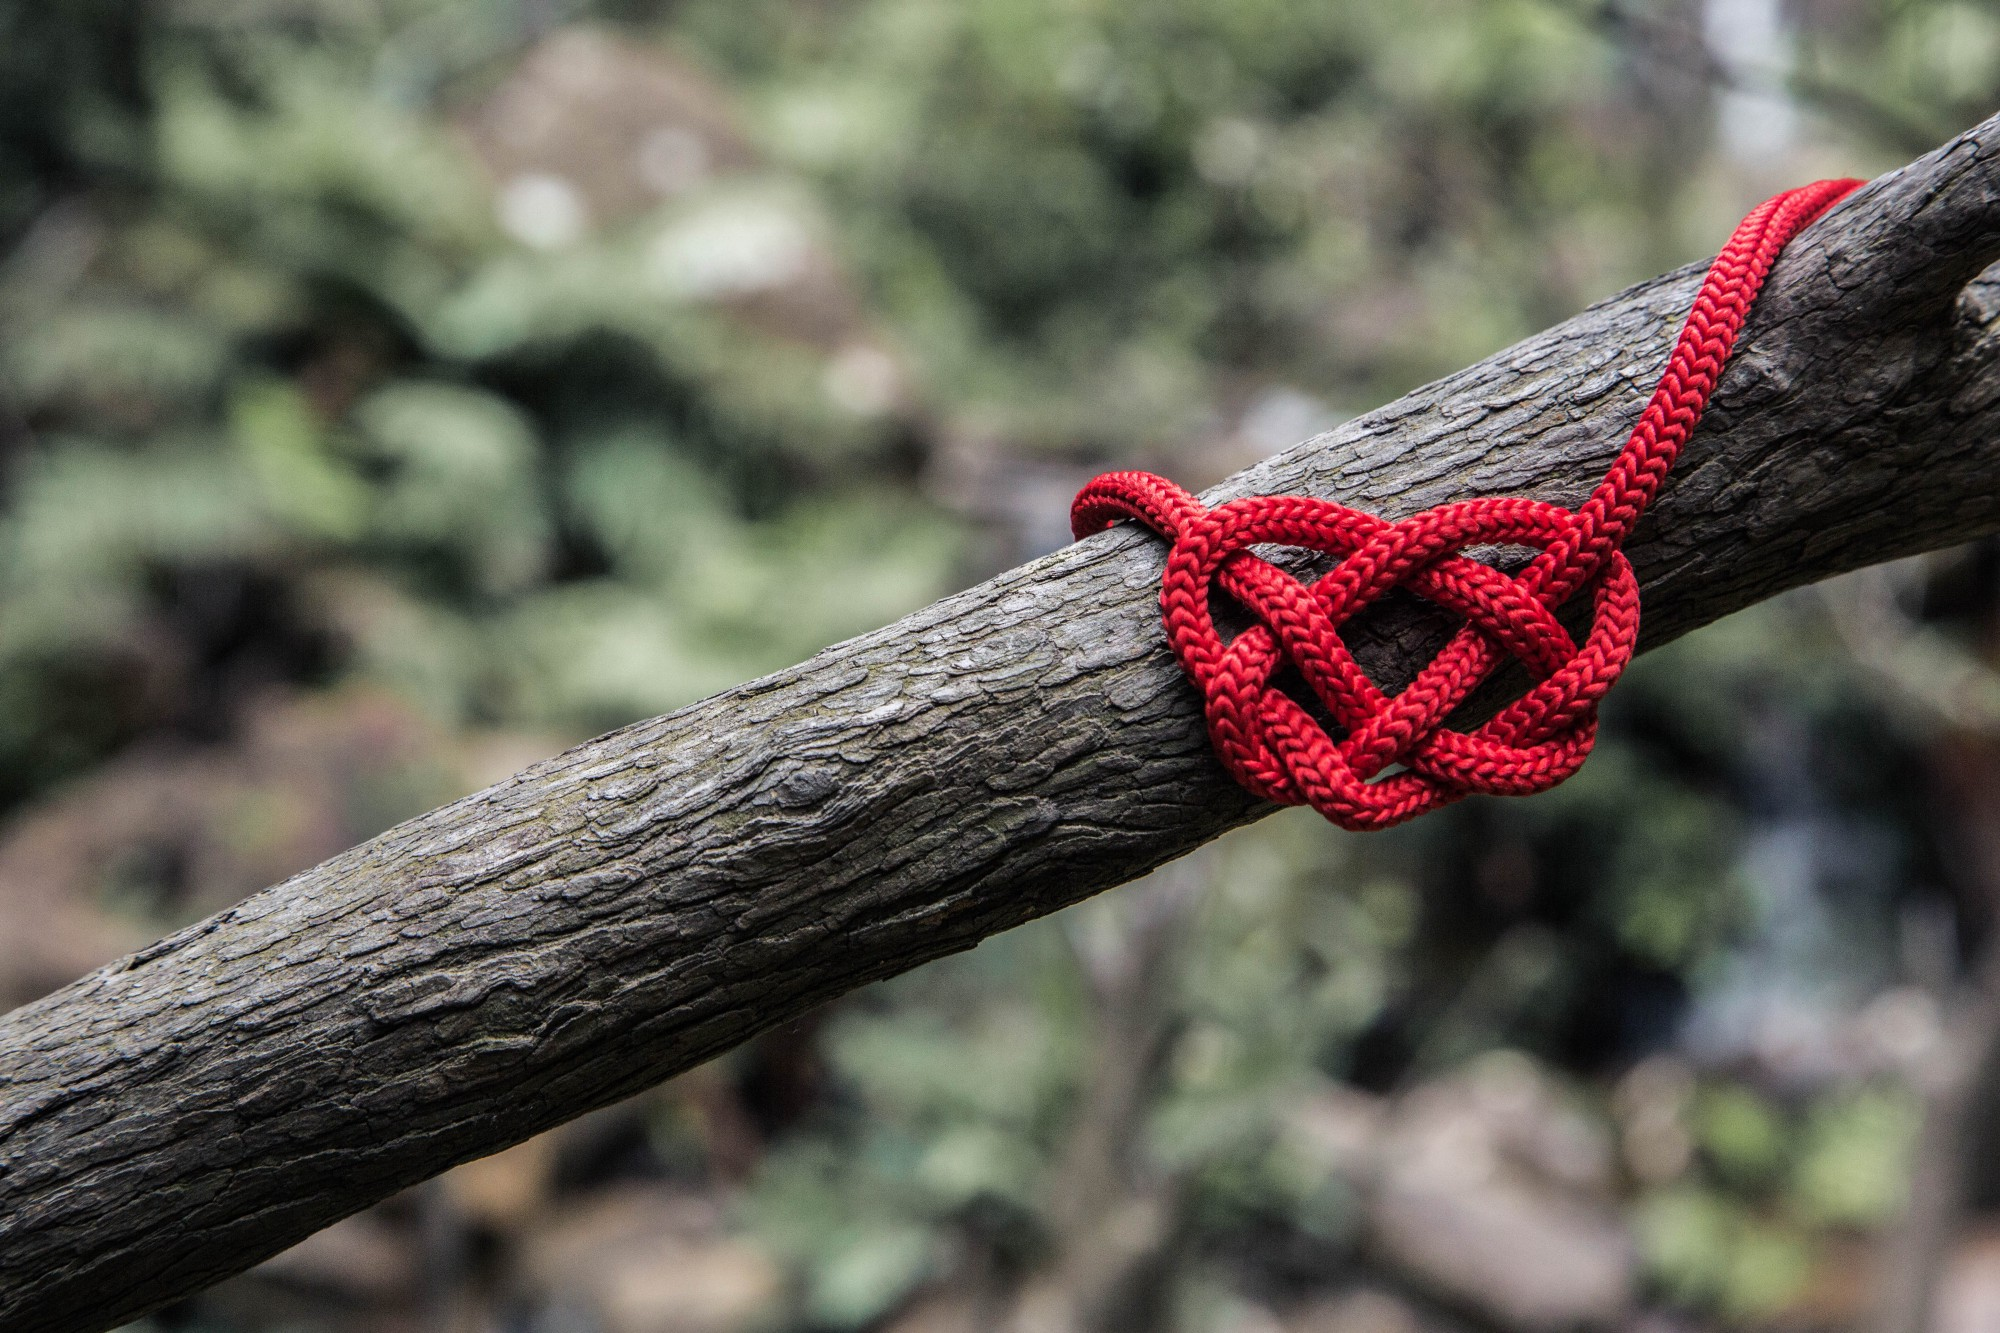 A red rope knotted around a tree branch into a heart shape